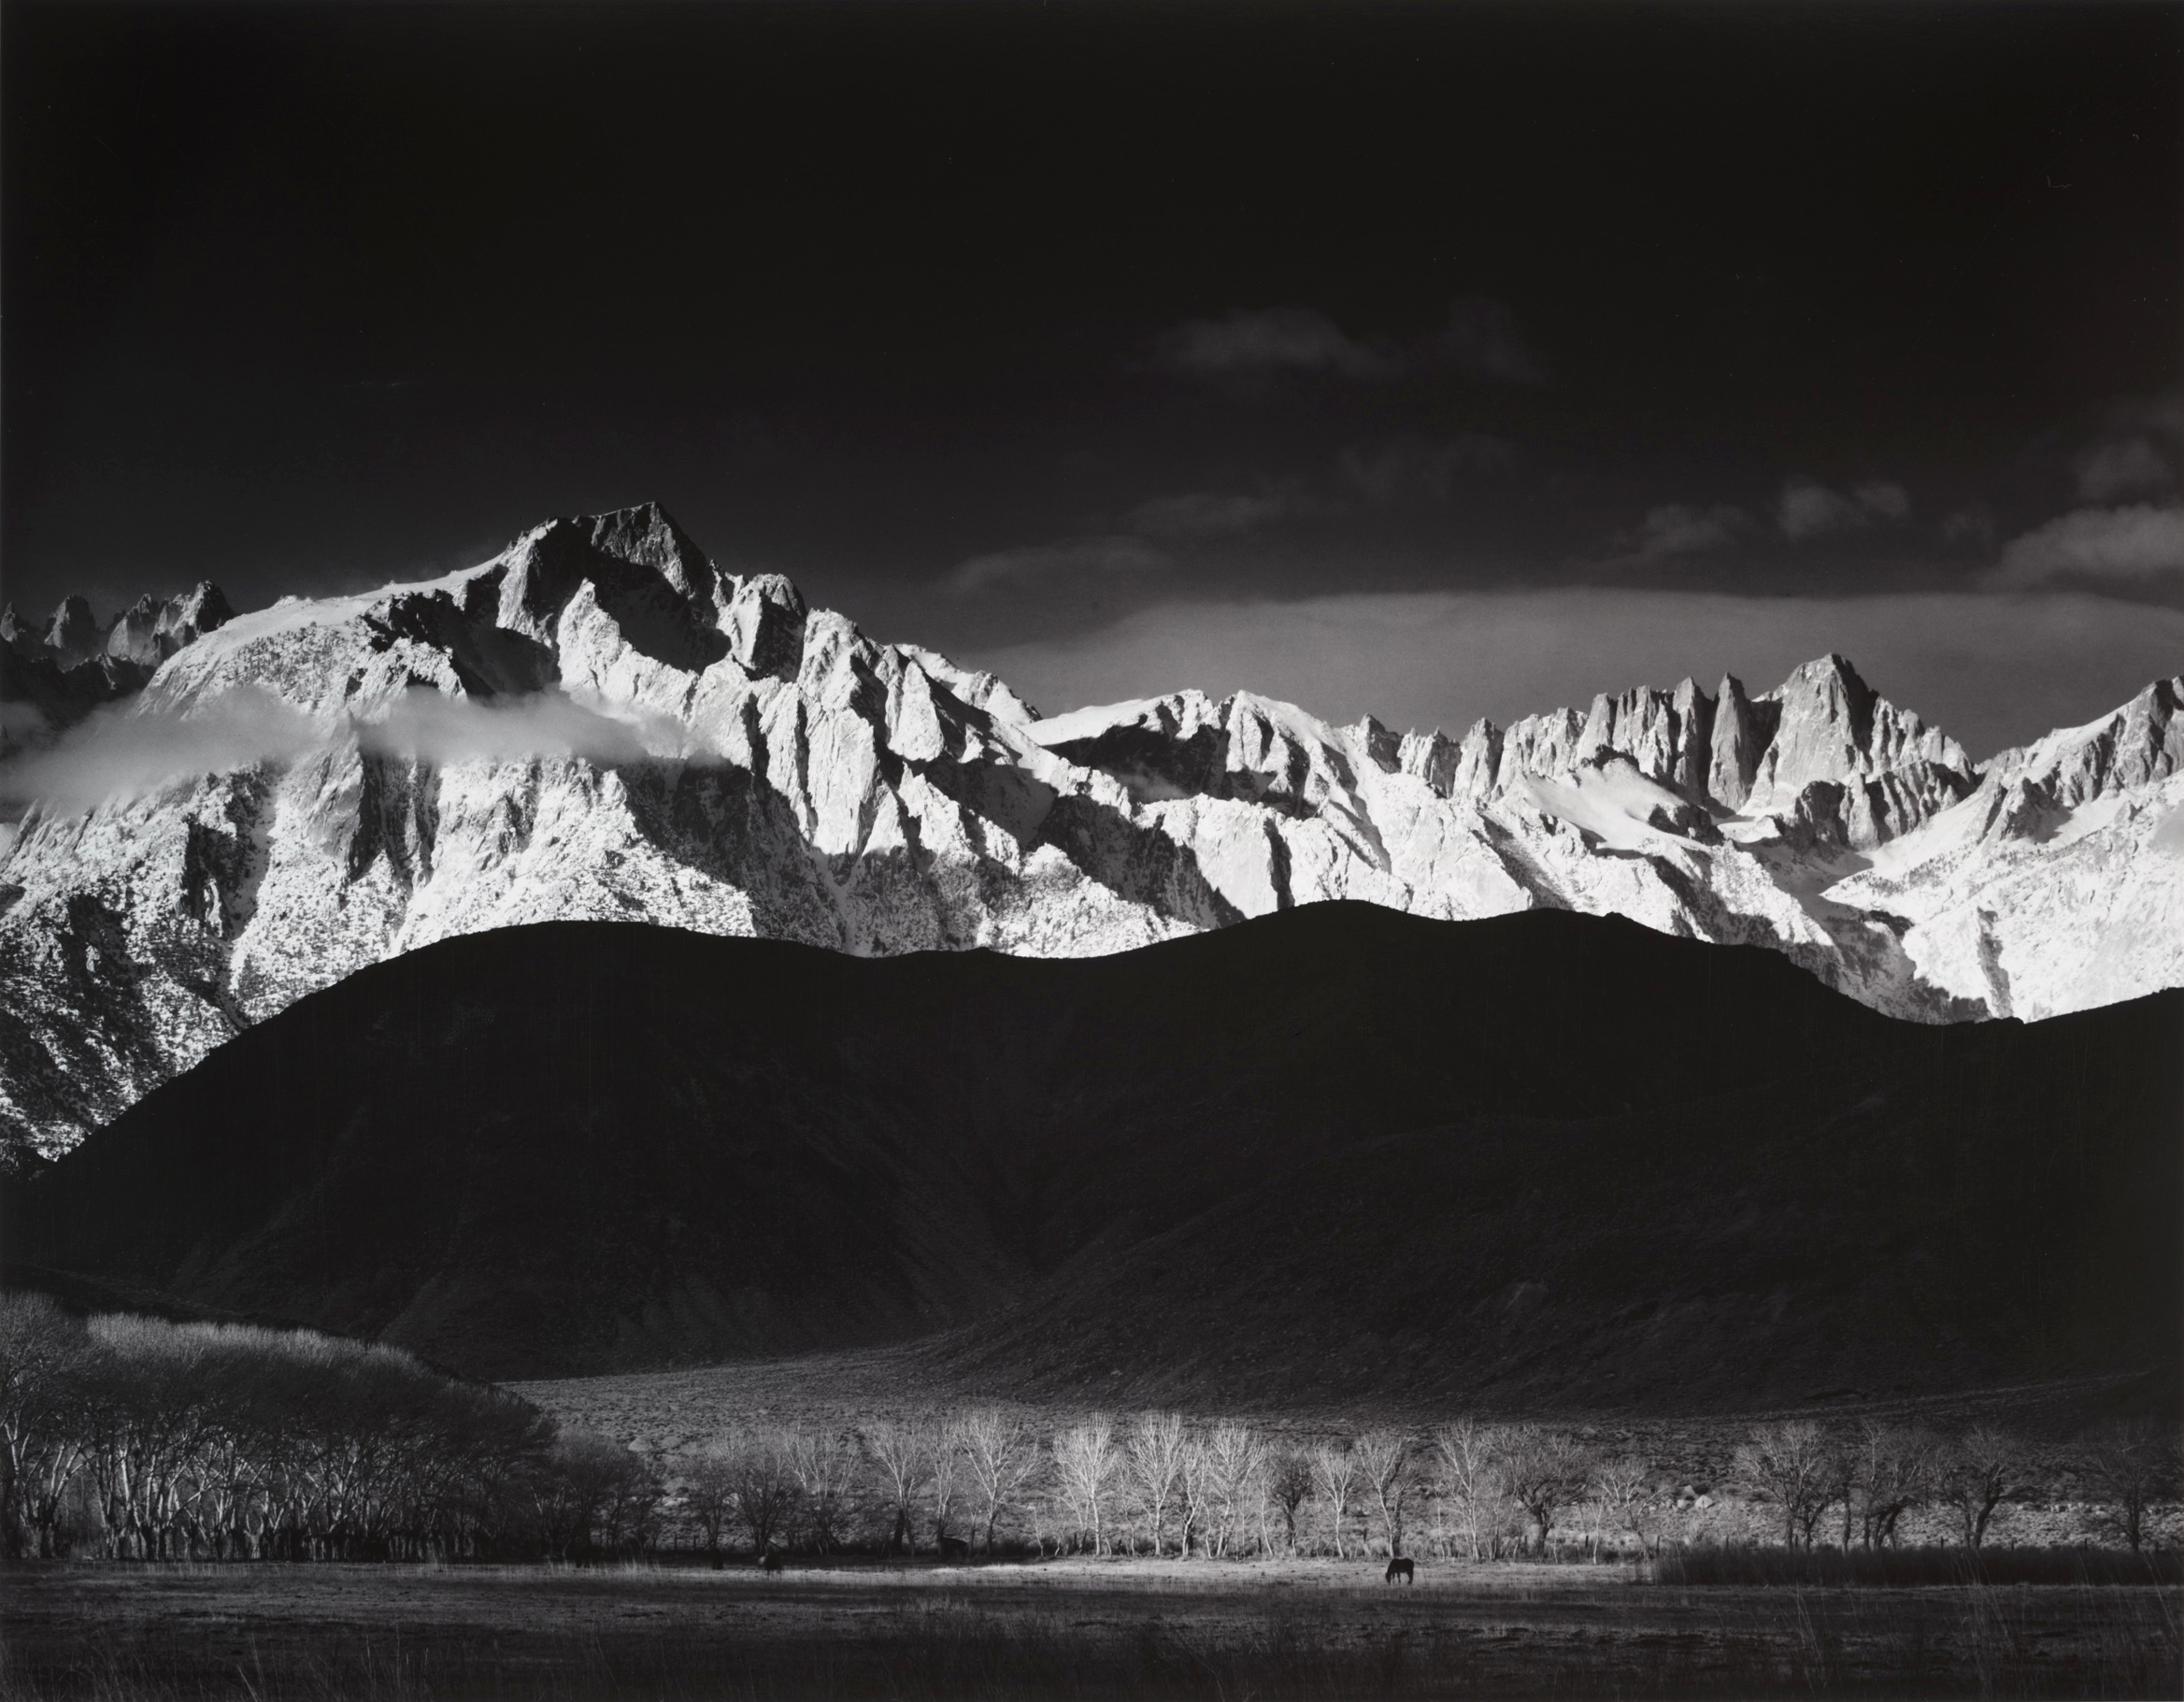 Ansel Adams, Winter Sunrise, the Sierra Nevada from Lone Pine, California, 1944; gelatin silver print; 15 5/8 x 19 1/4 in. (39.7 x 48.9 cm); Collection of the Center for Creative Photography, University of Arizona; © 2009 The Ansel Adams Publishing Rights Trust